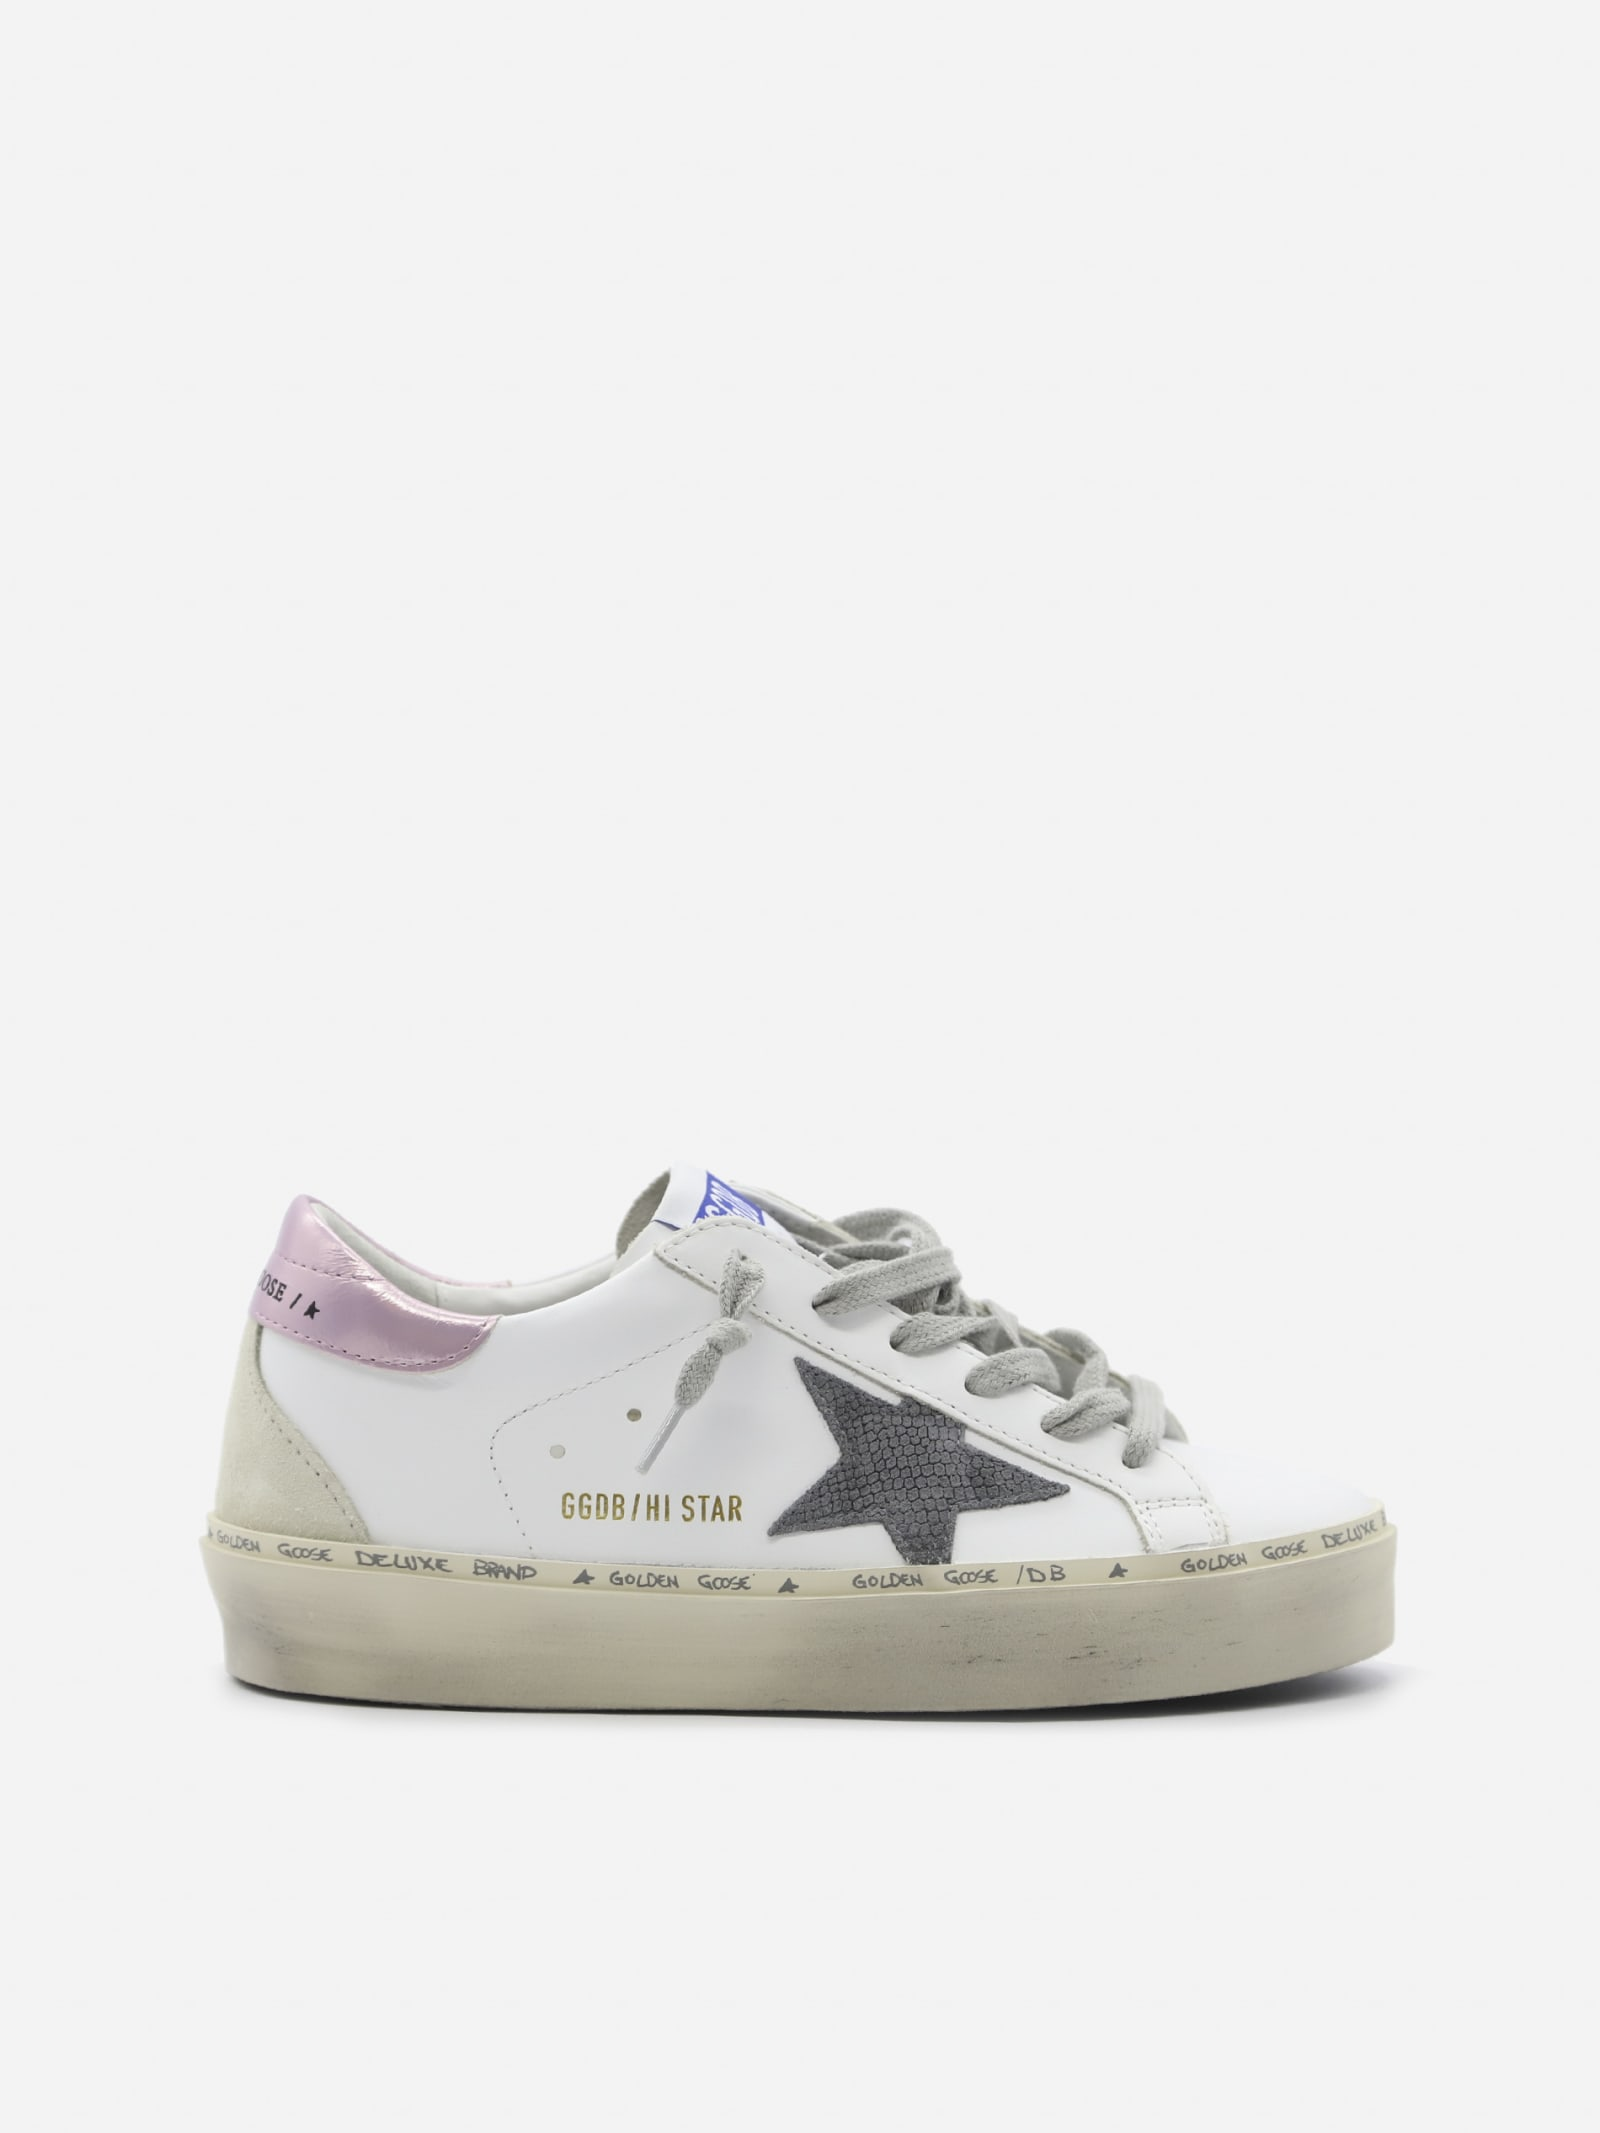 Golden Goose Hi Star Sneakers In Leather With Contrasting Heel Tab